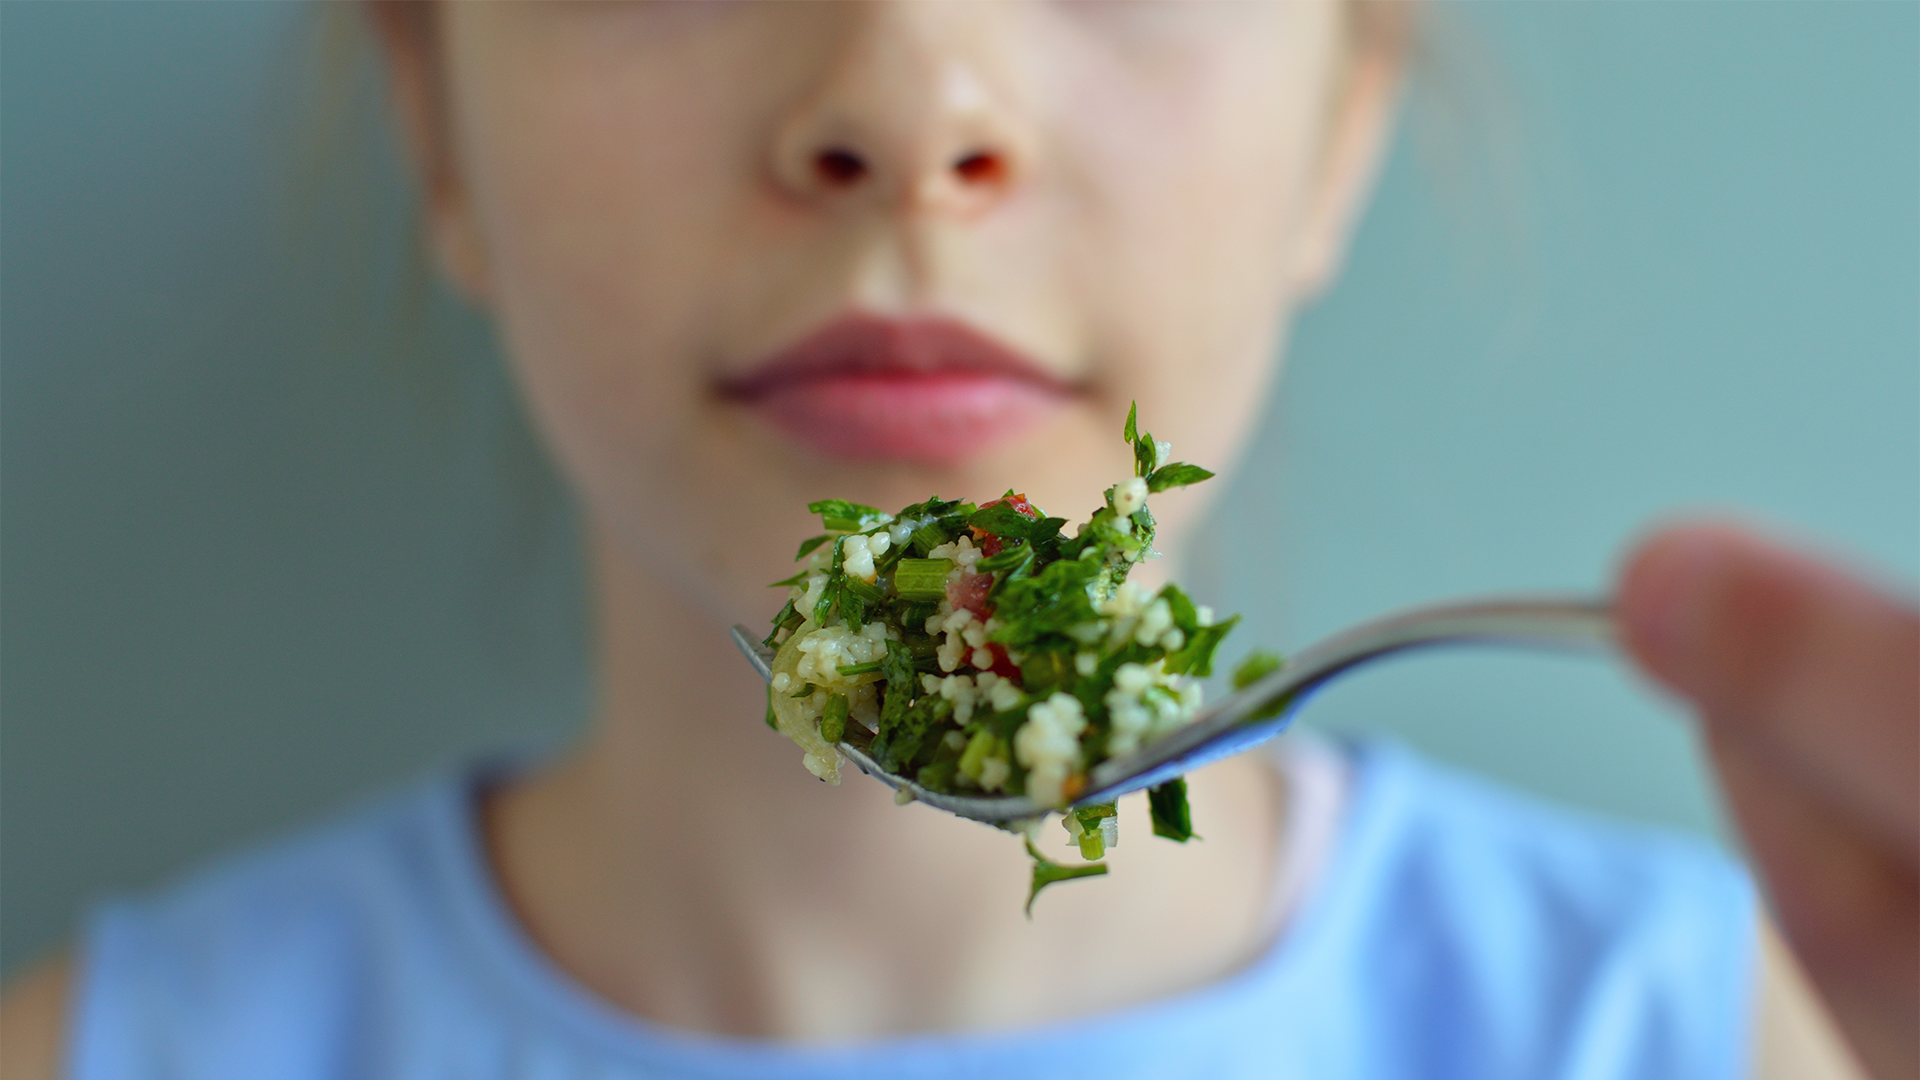 A young girl holding a spoon of salad in front of her